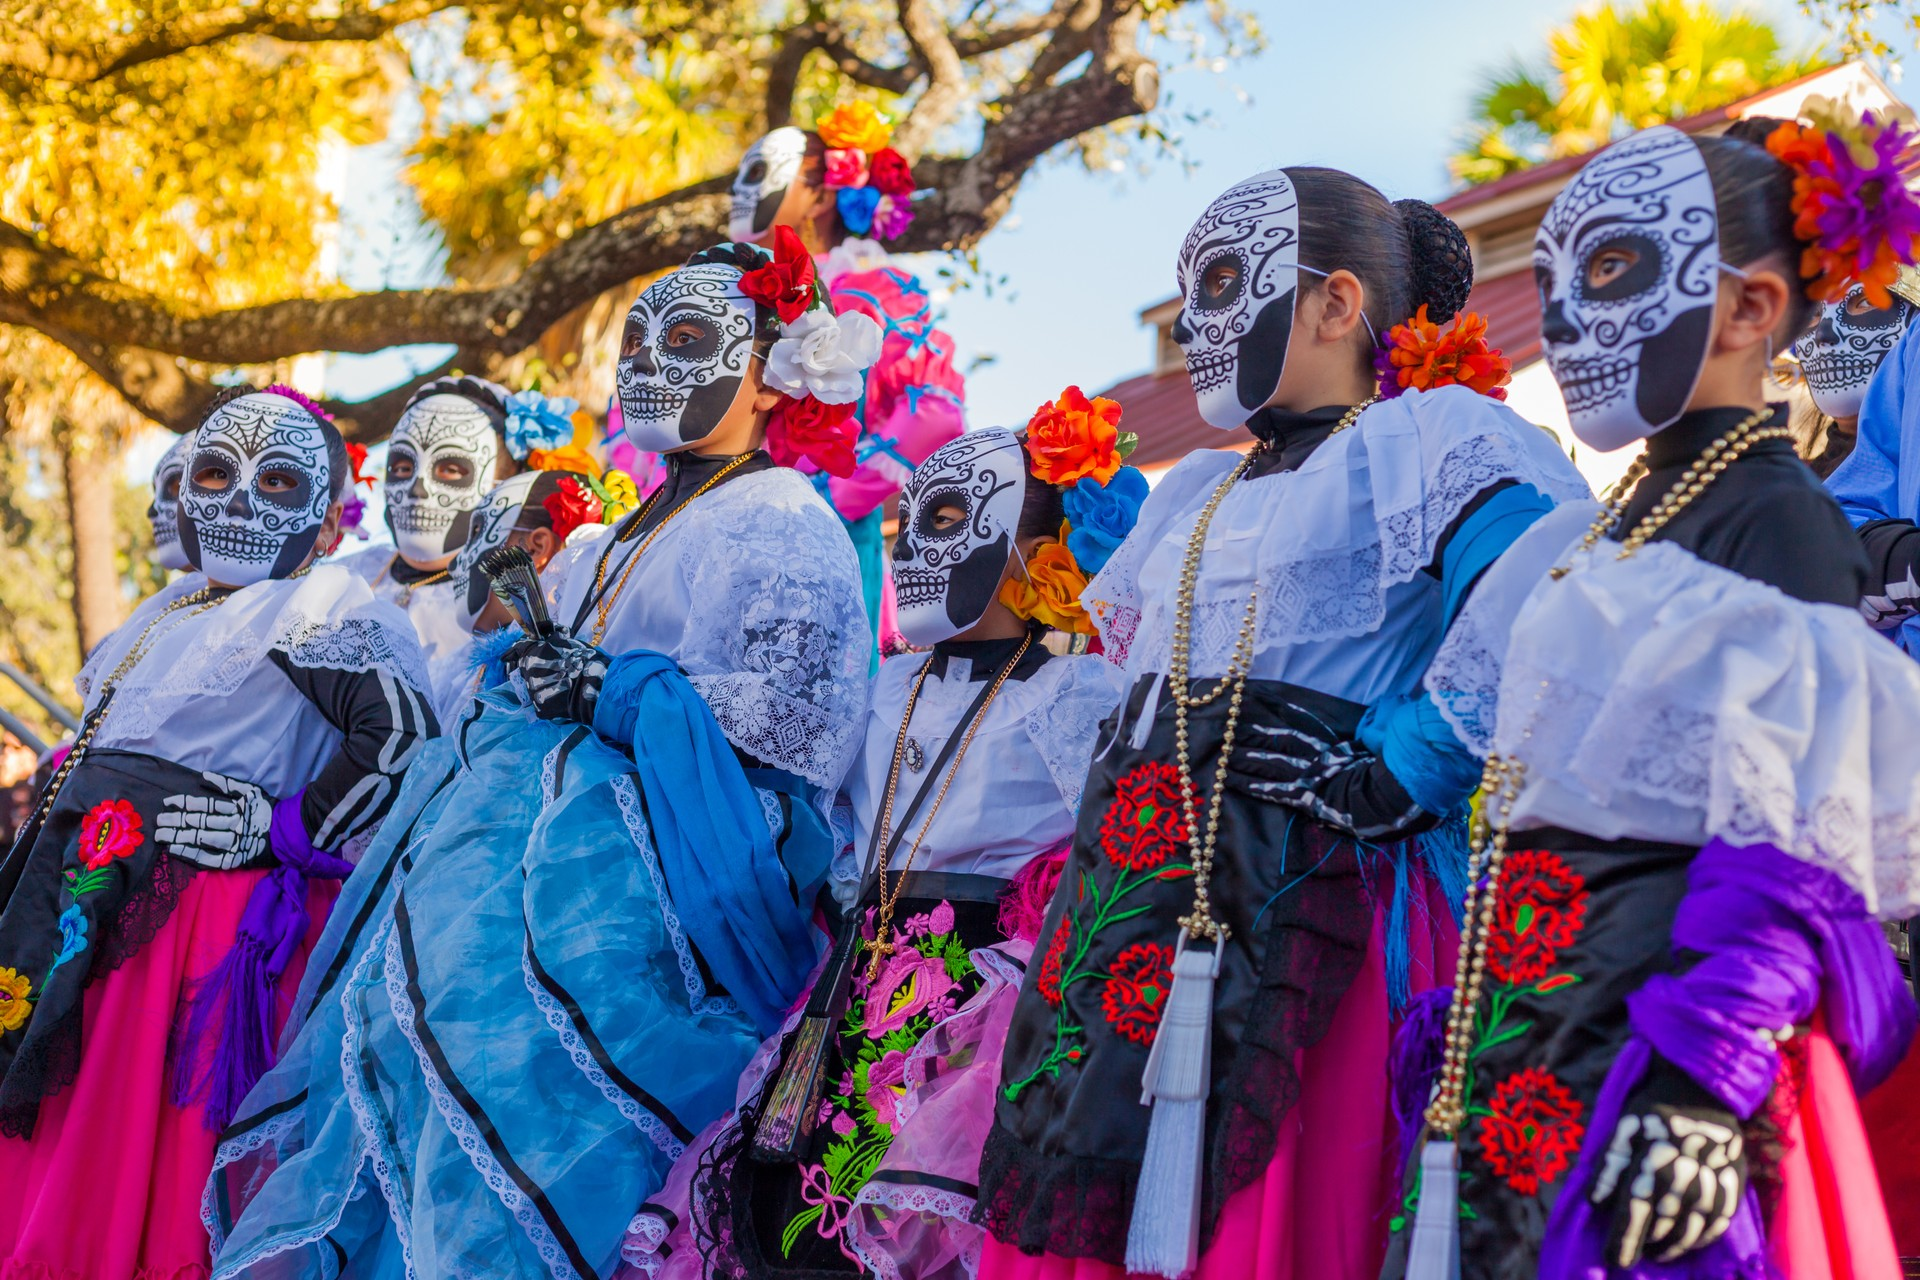 How to experience Mexico's famous Day of the Dead: A group enjoying the festivties